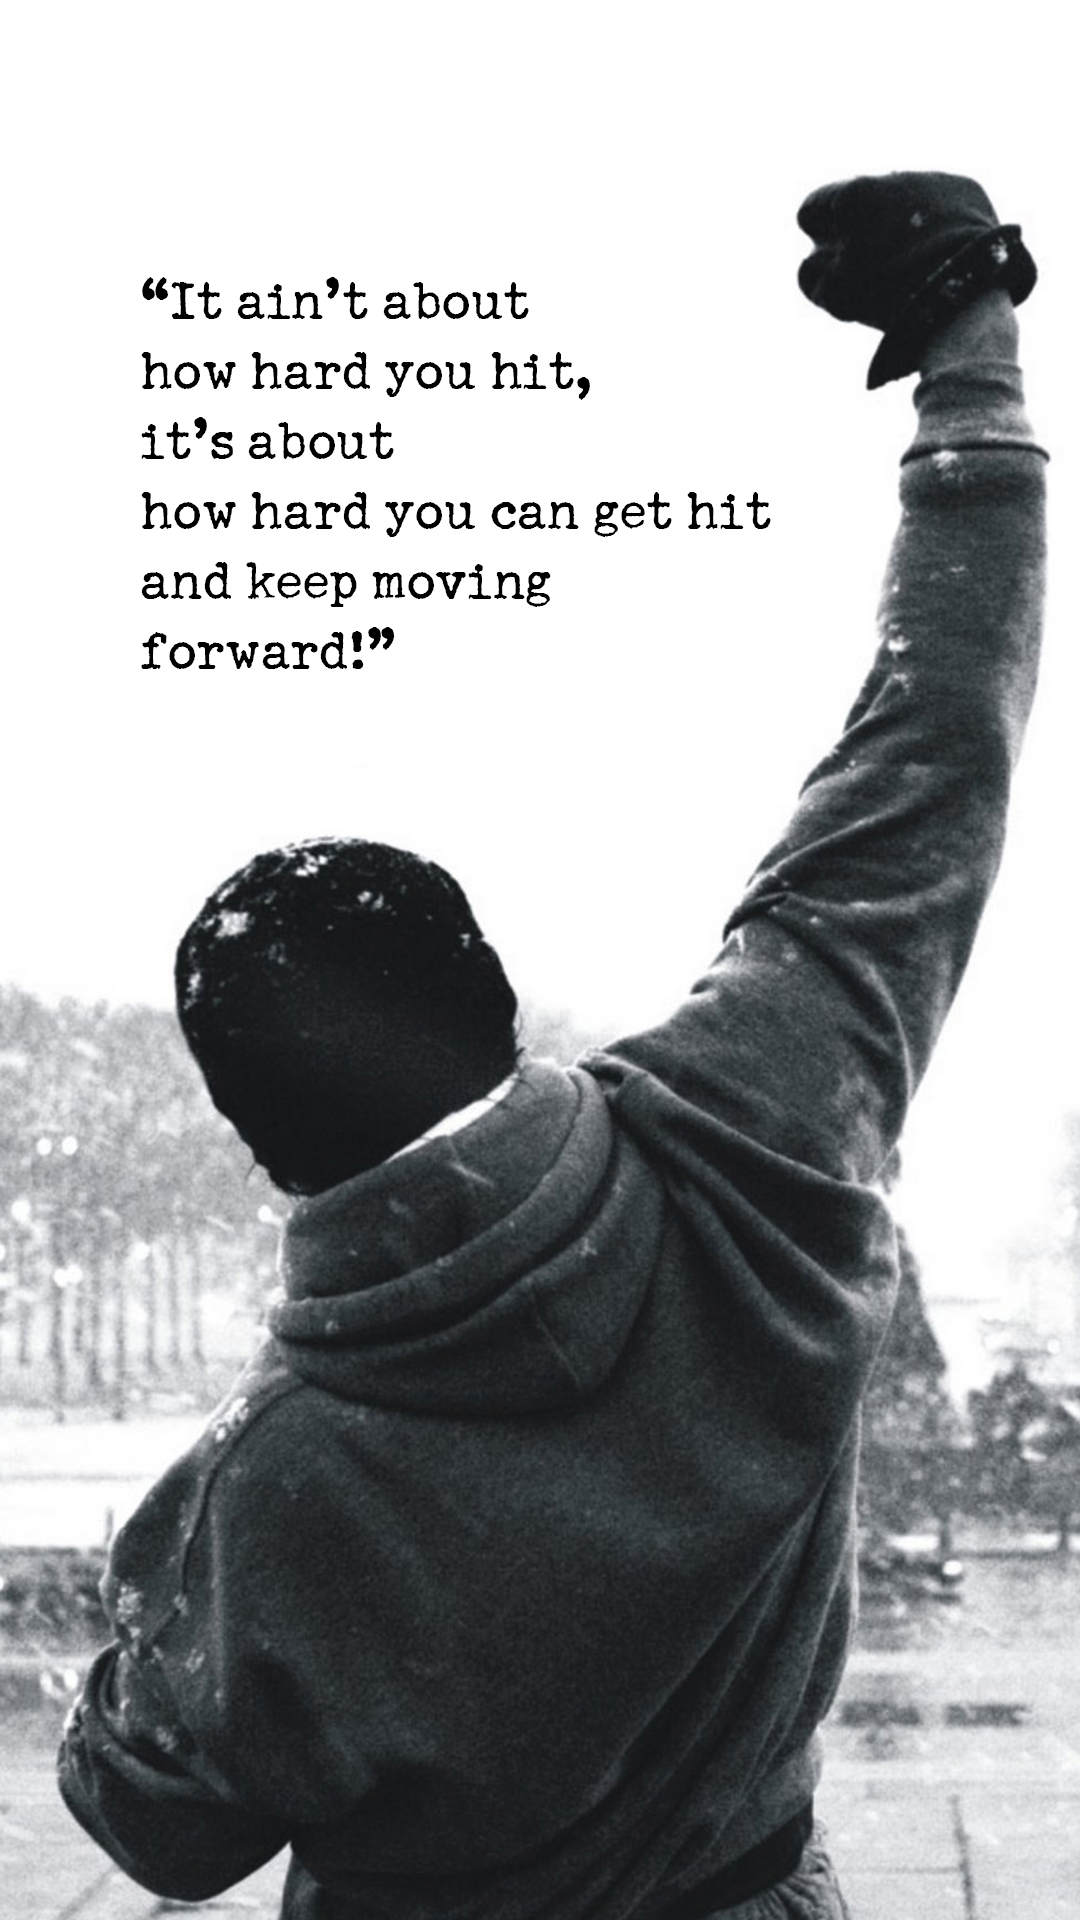 Rocky Motivational Words Android Wallpaper download 1080x1920